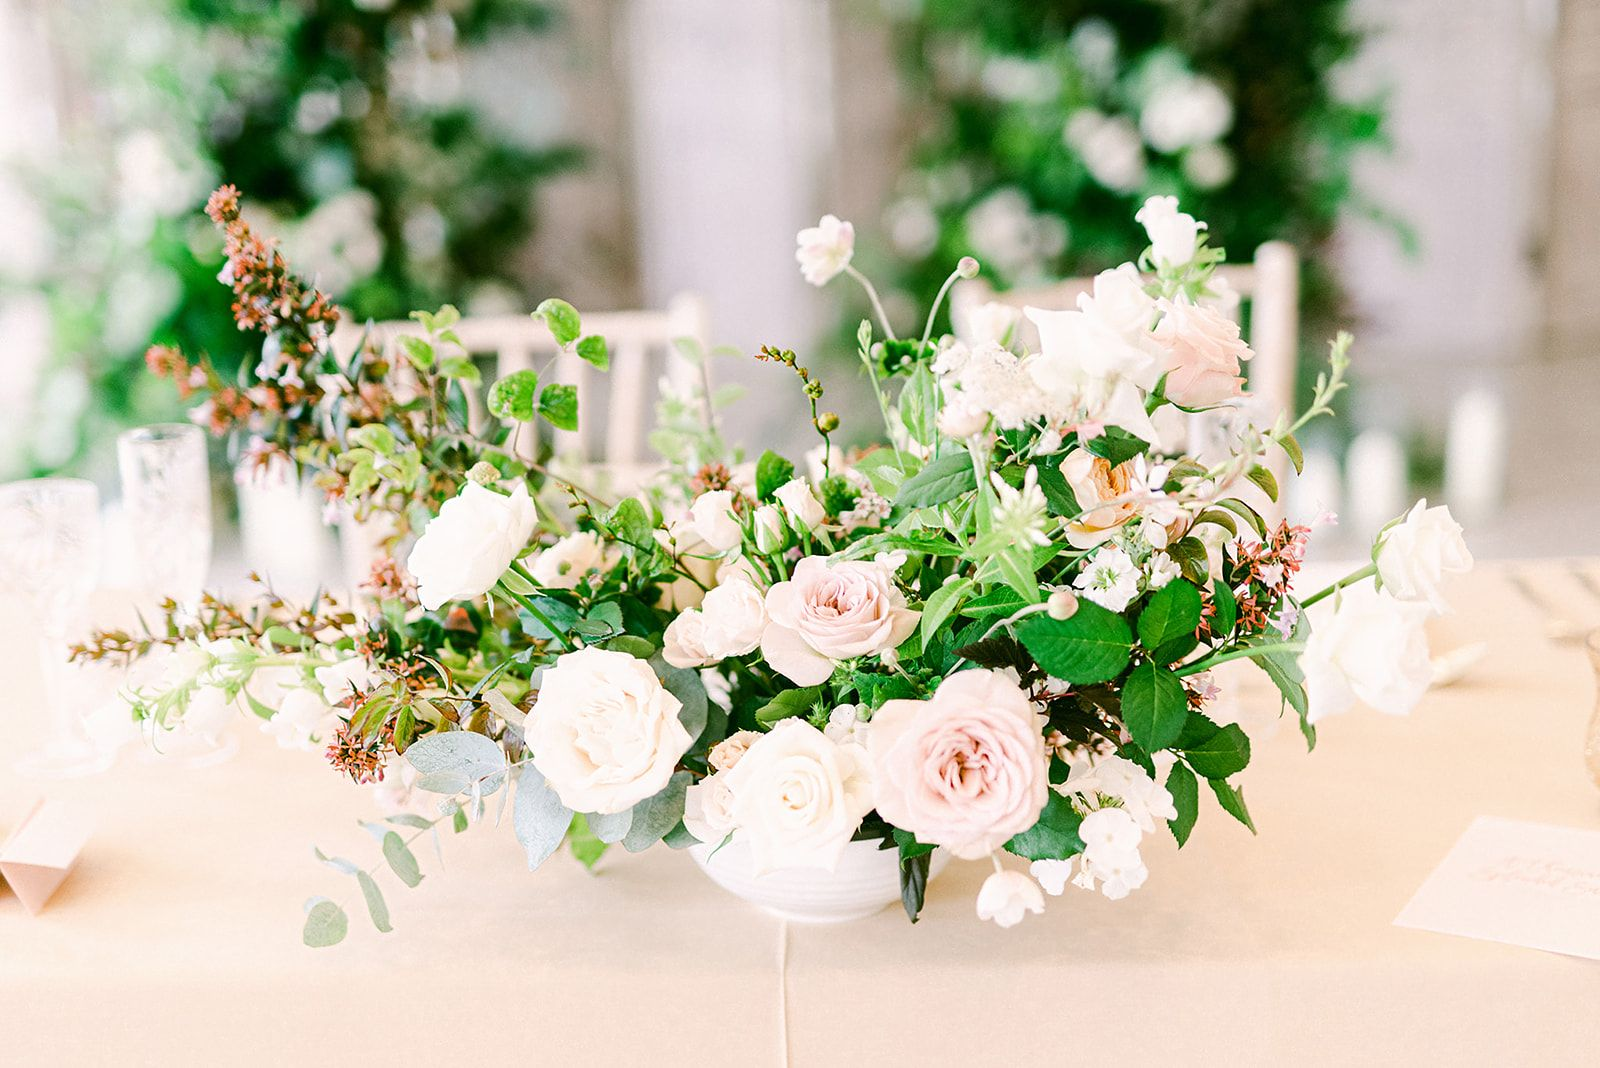 Bowl Arrangement For Tables At Wedding Reception With Roses